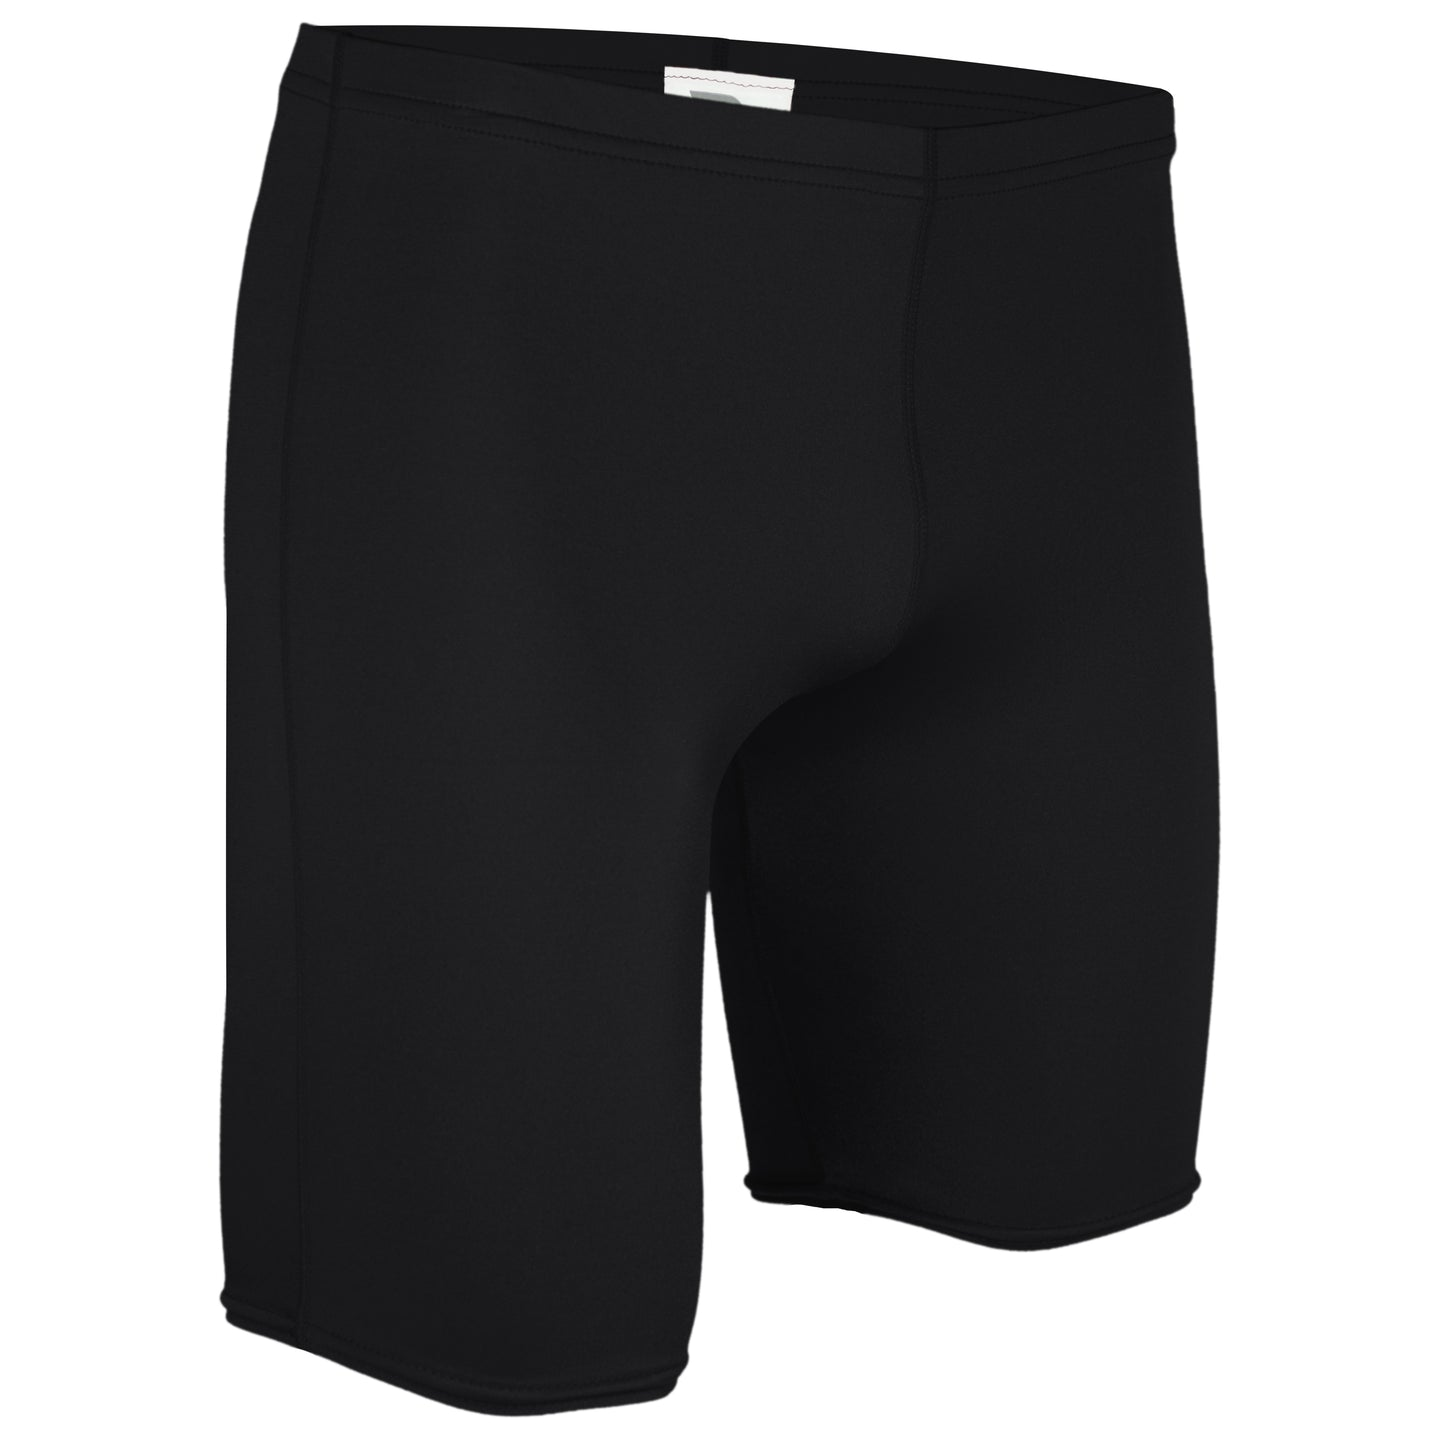 NL-118Y-CB Youth Nylon Lycra Knee Length Short